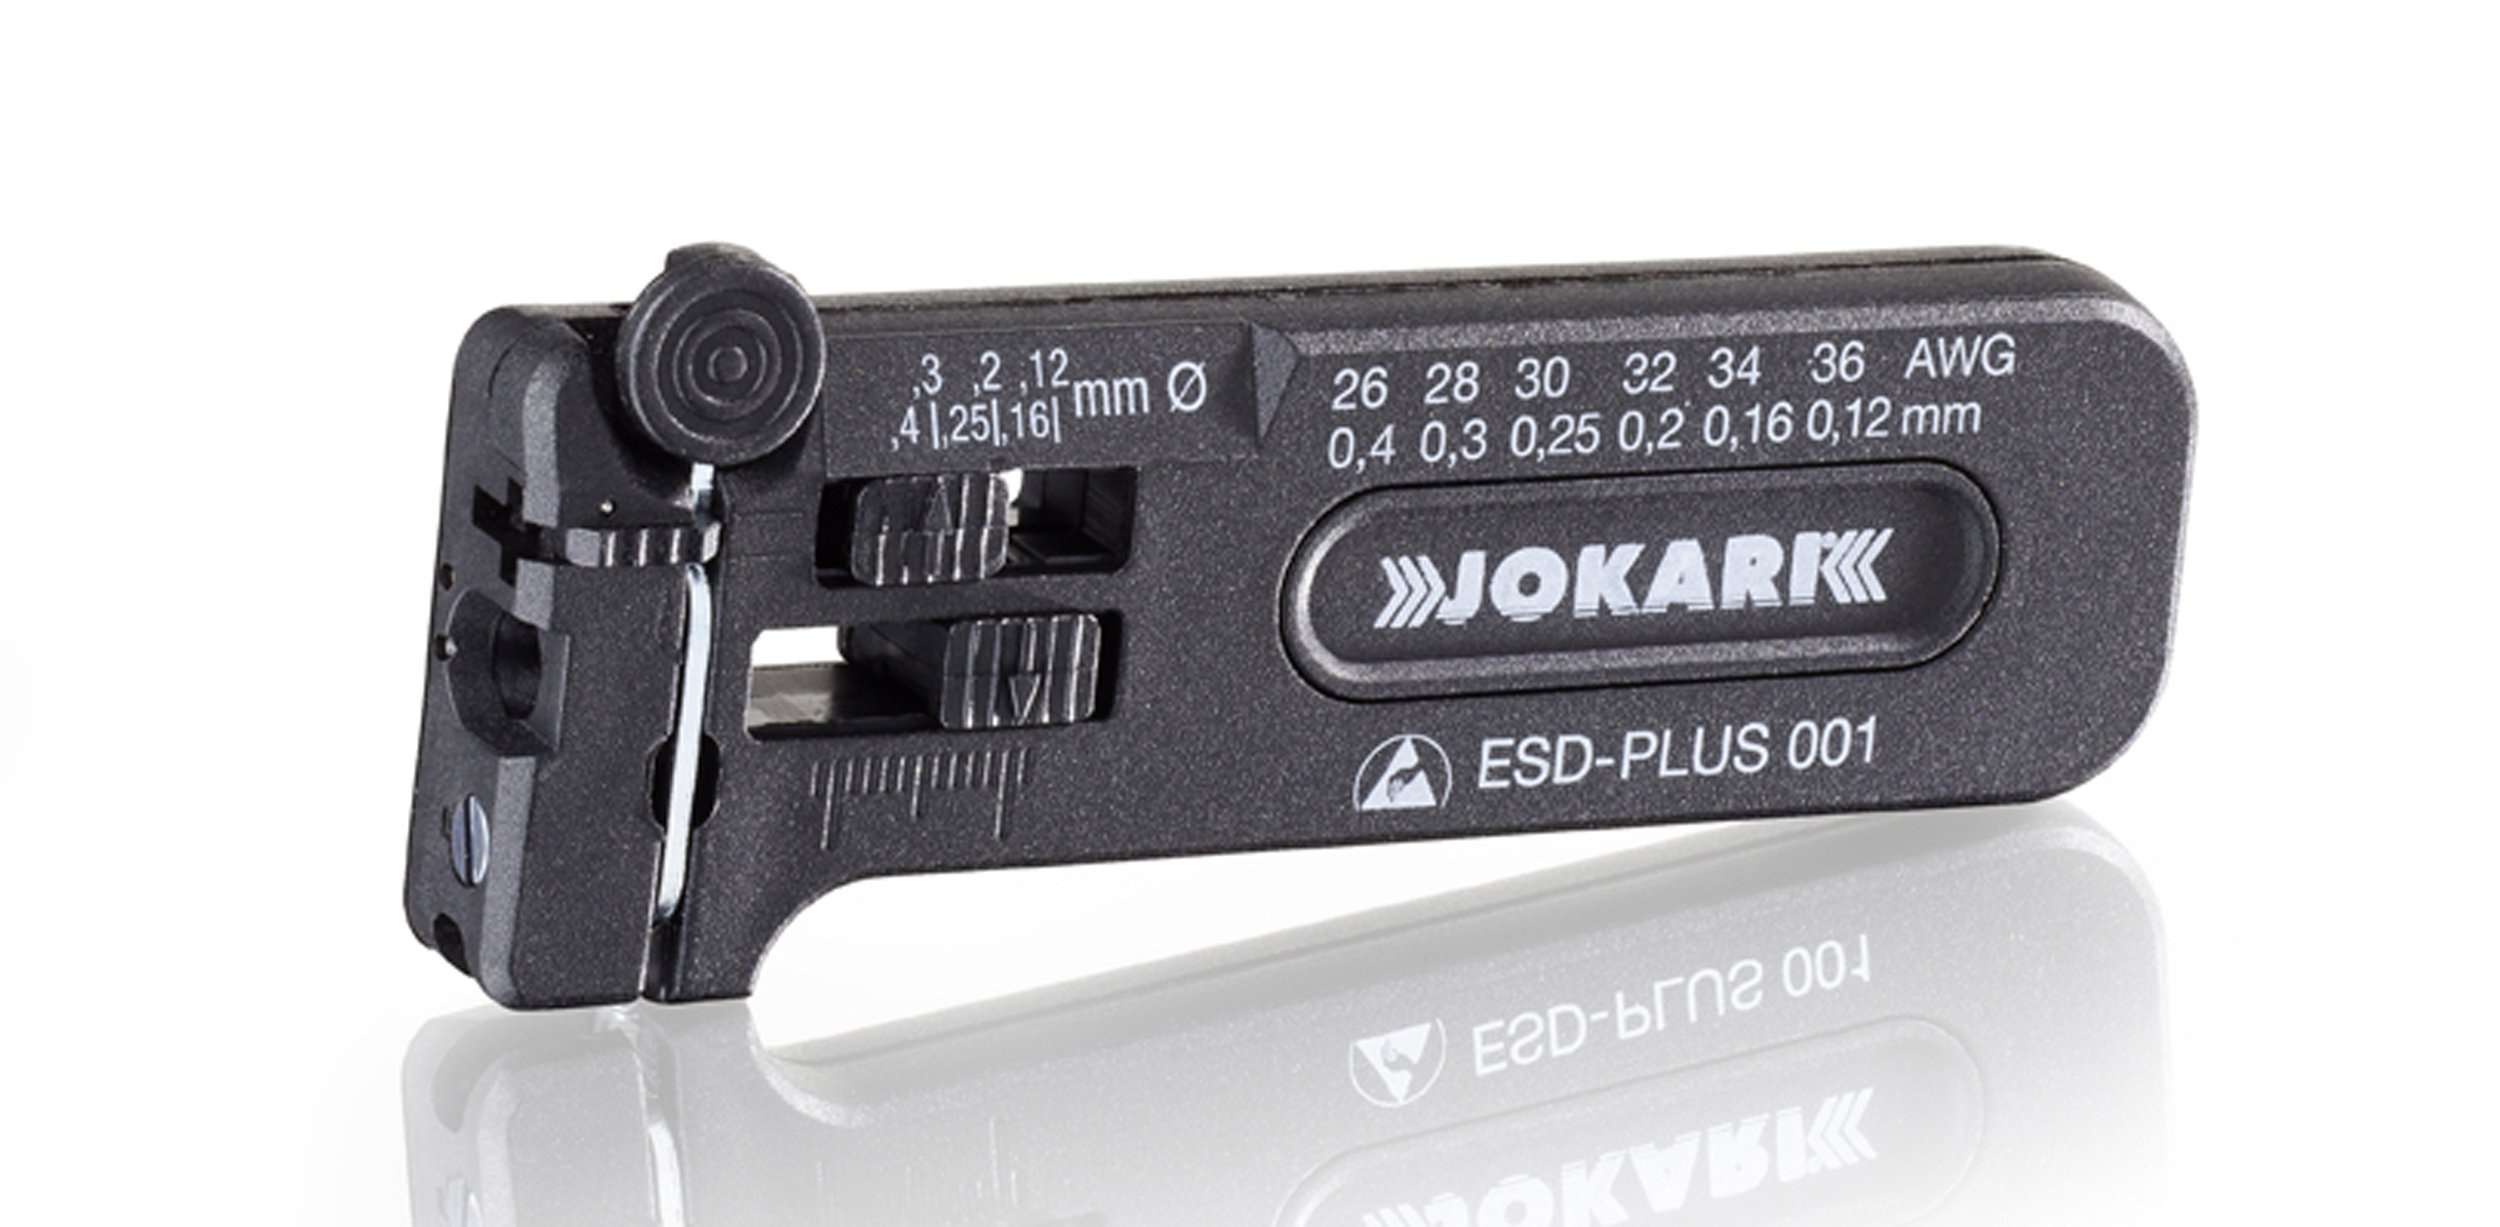 Jokari 40027 ESD-Plus 001 Adjustable Mini-Precision Stripping Tool for Cable Stripping, 36-26 AWG (0.12-0.40mm)